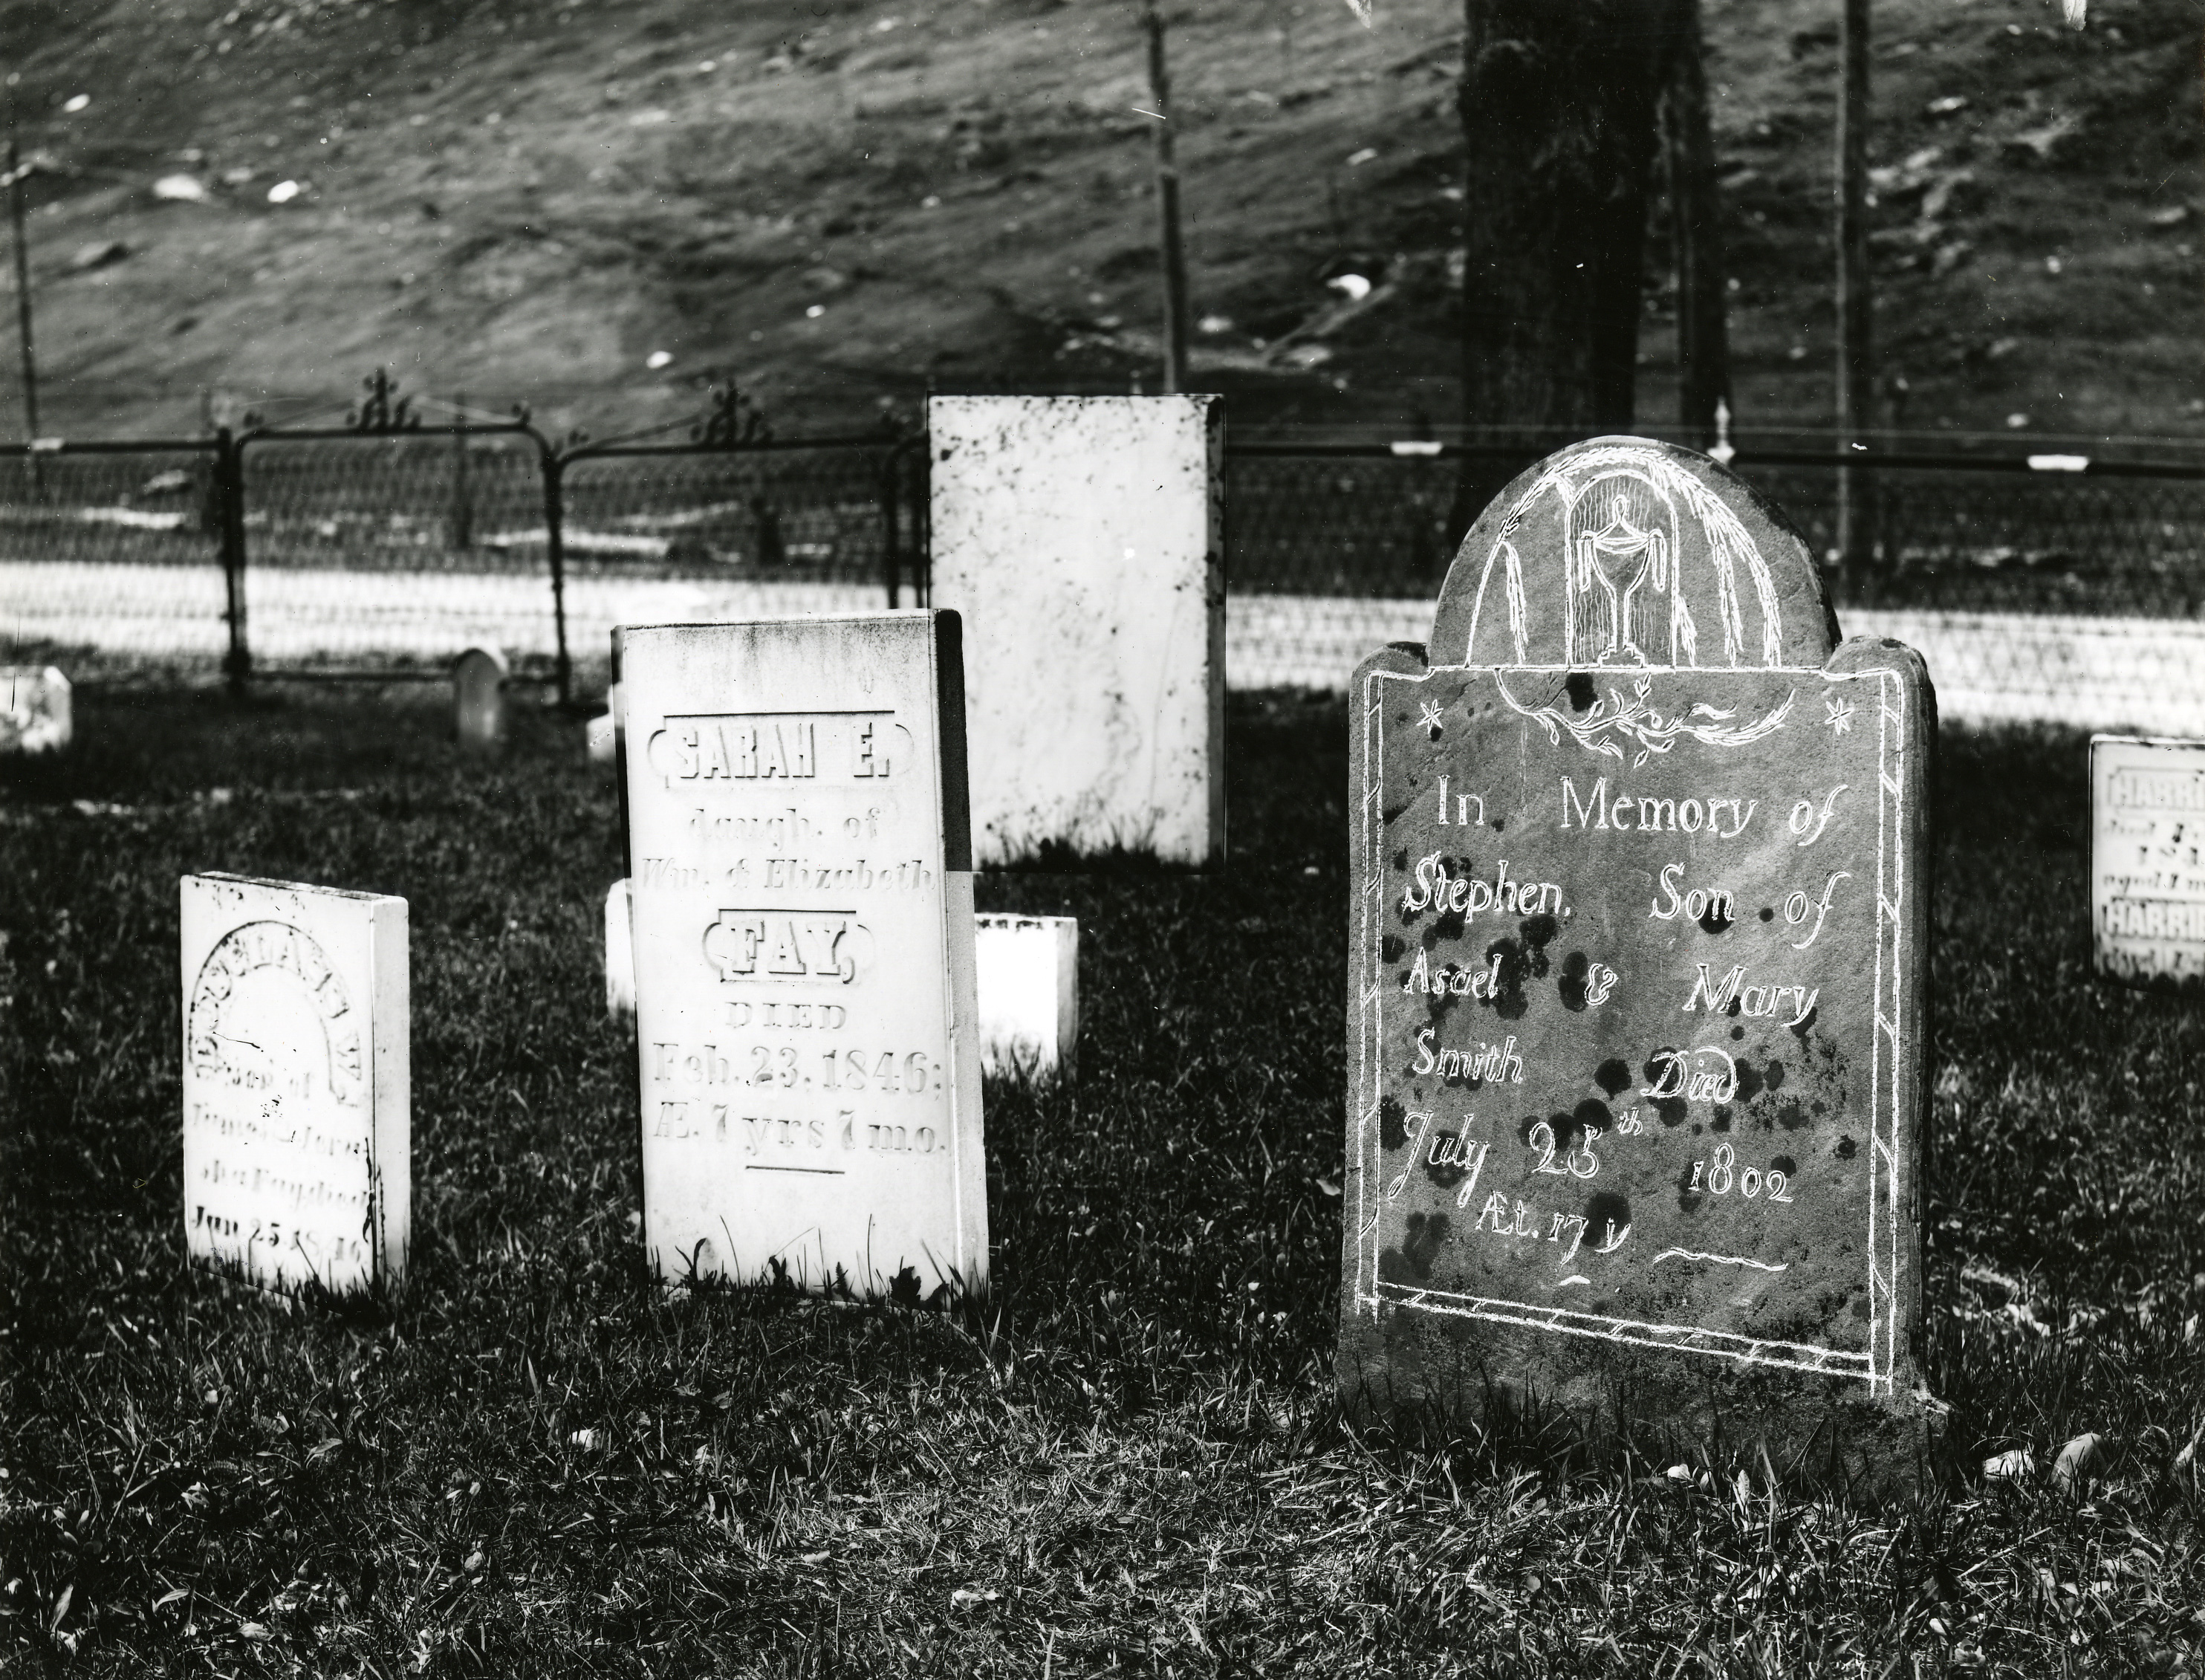 Stephen Smith's Grave, Royalton, Vermont